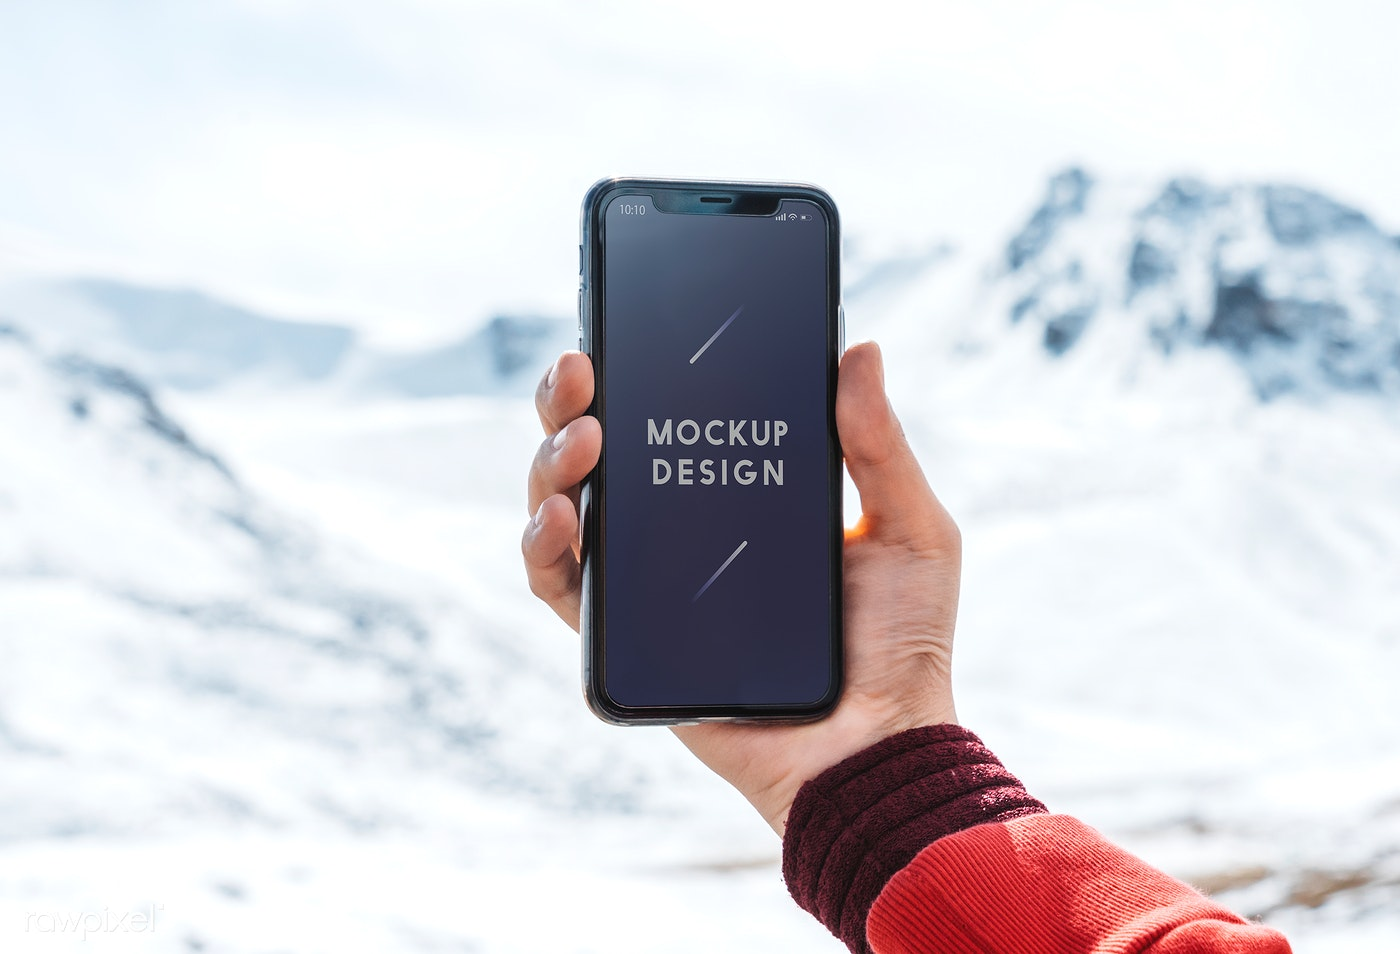 Download Premium Psd Of Mobile Phone Mockup Design By The Himalaya